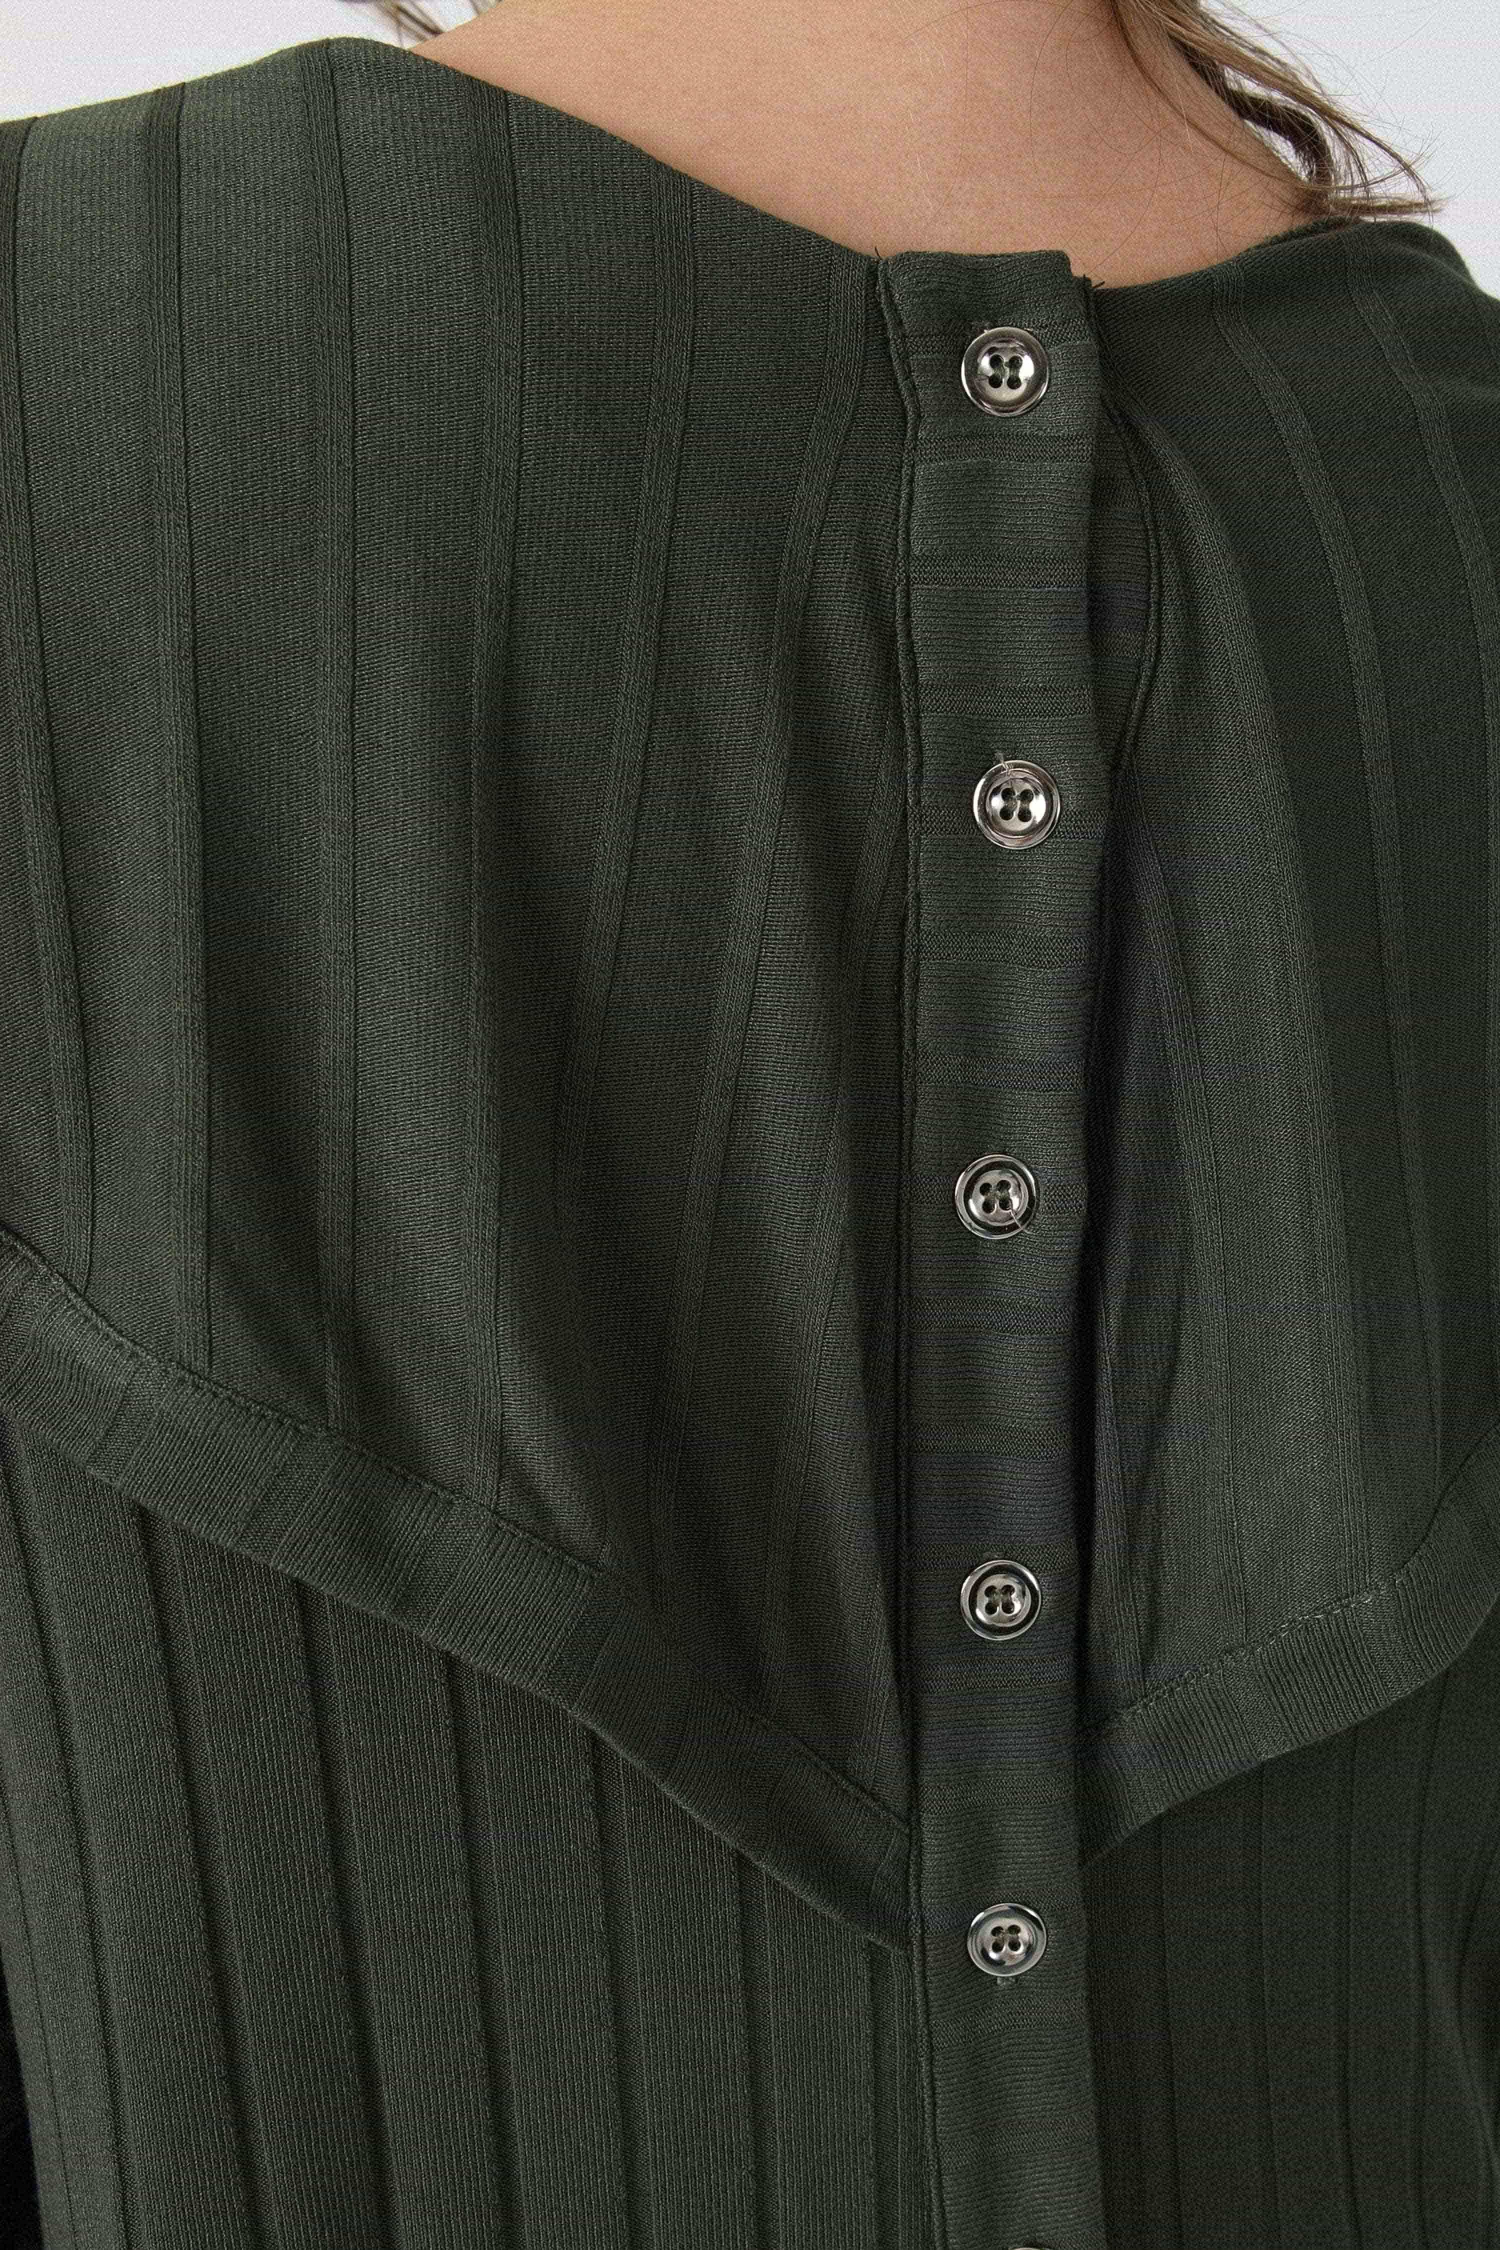 Ribbed waistcoat with waterfall collar (February 15/20 expedition)